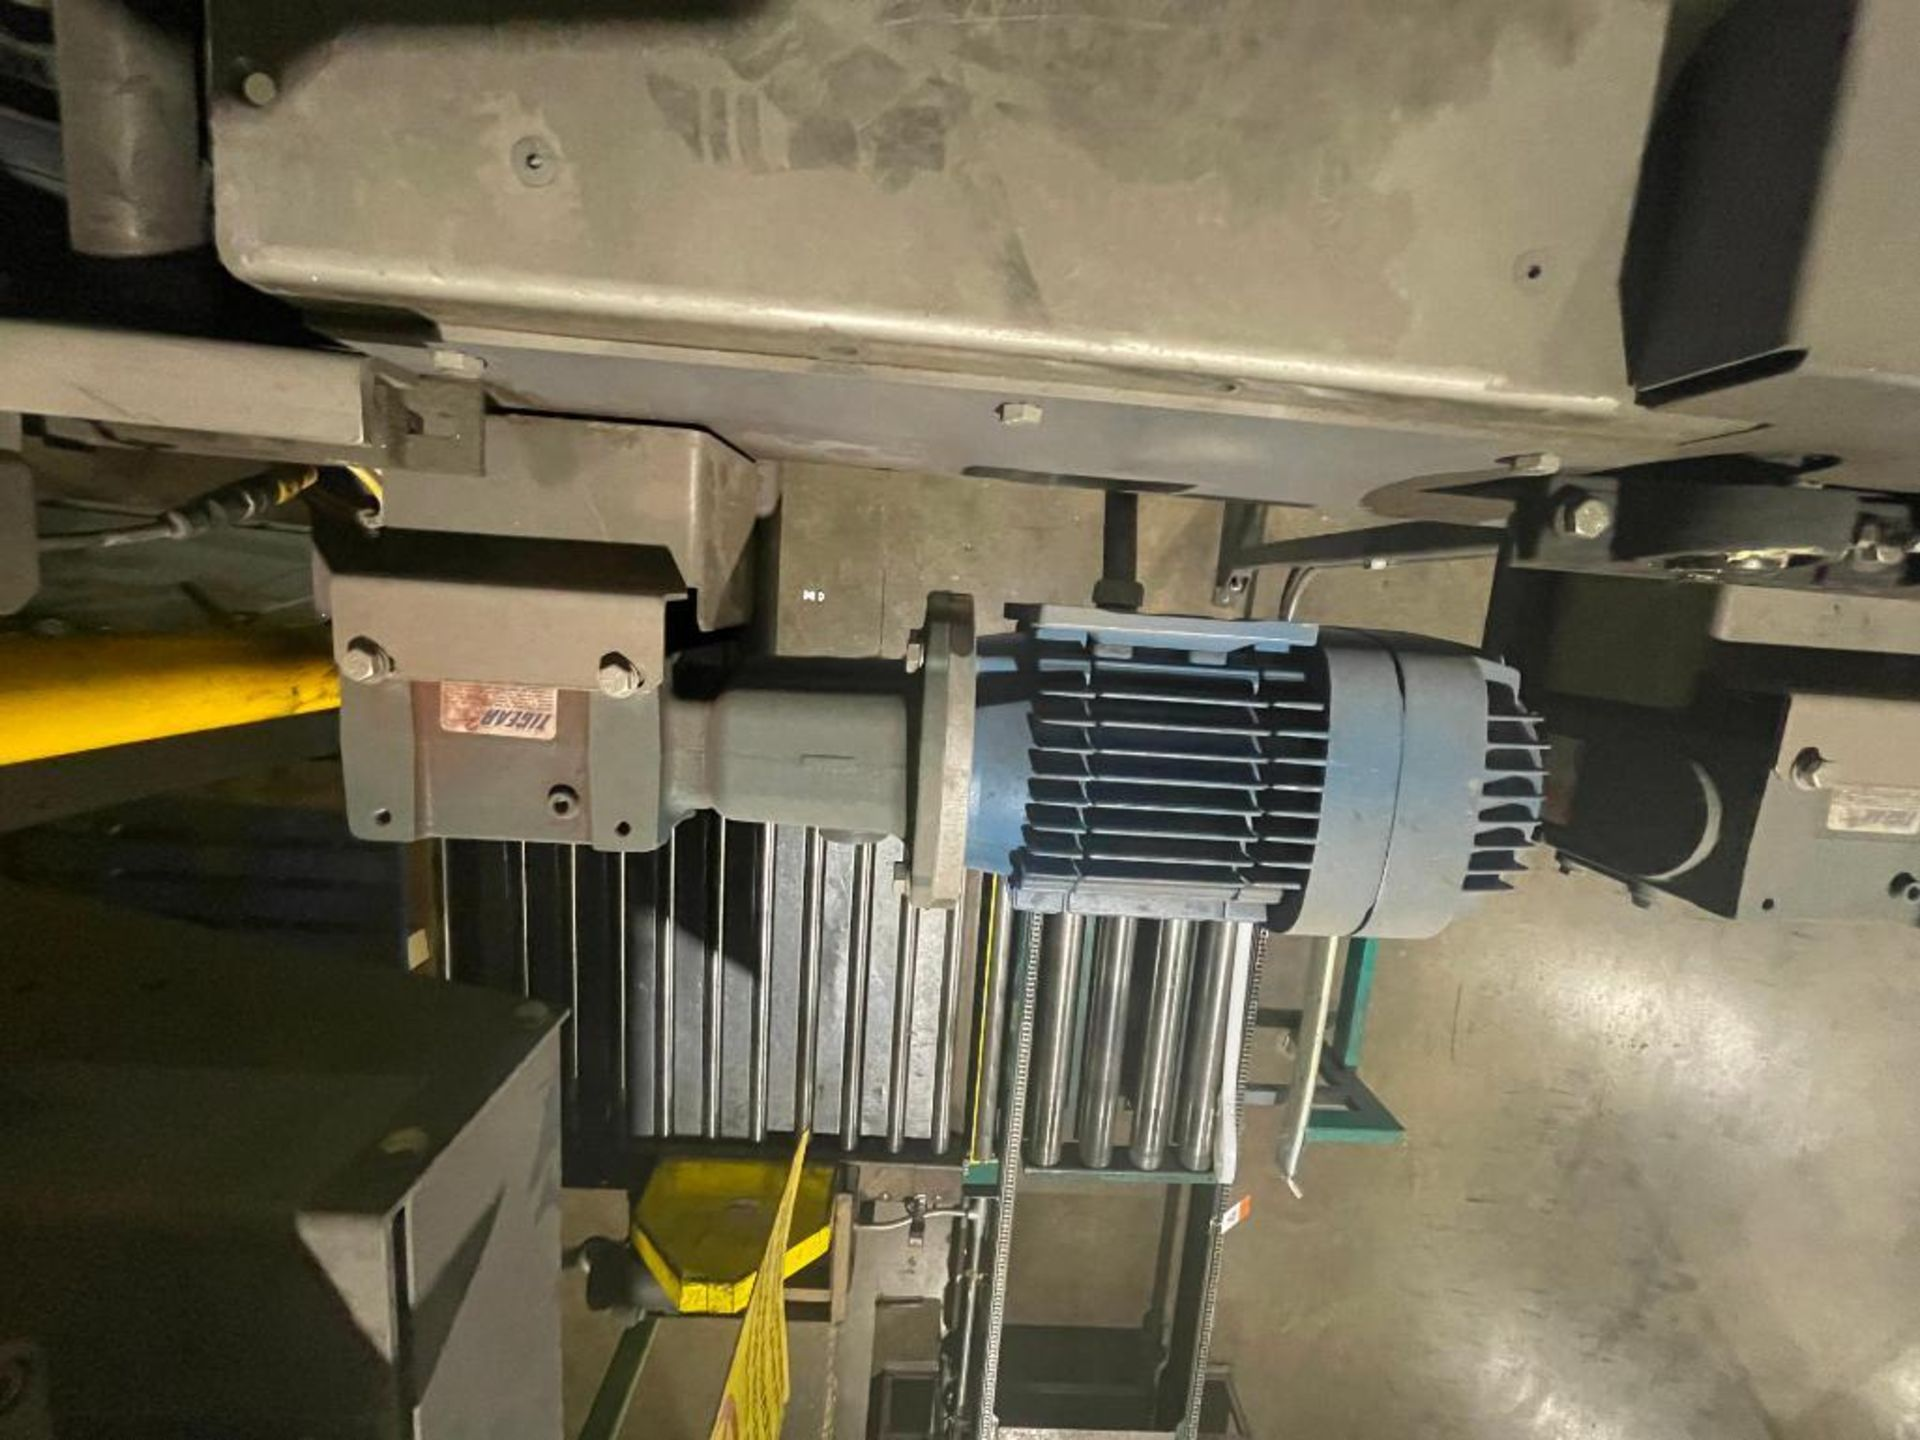 2008 Currie top to bottom palletizer, model PALLETIZER, sn 3348 - Image 27 of 28